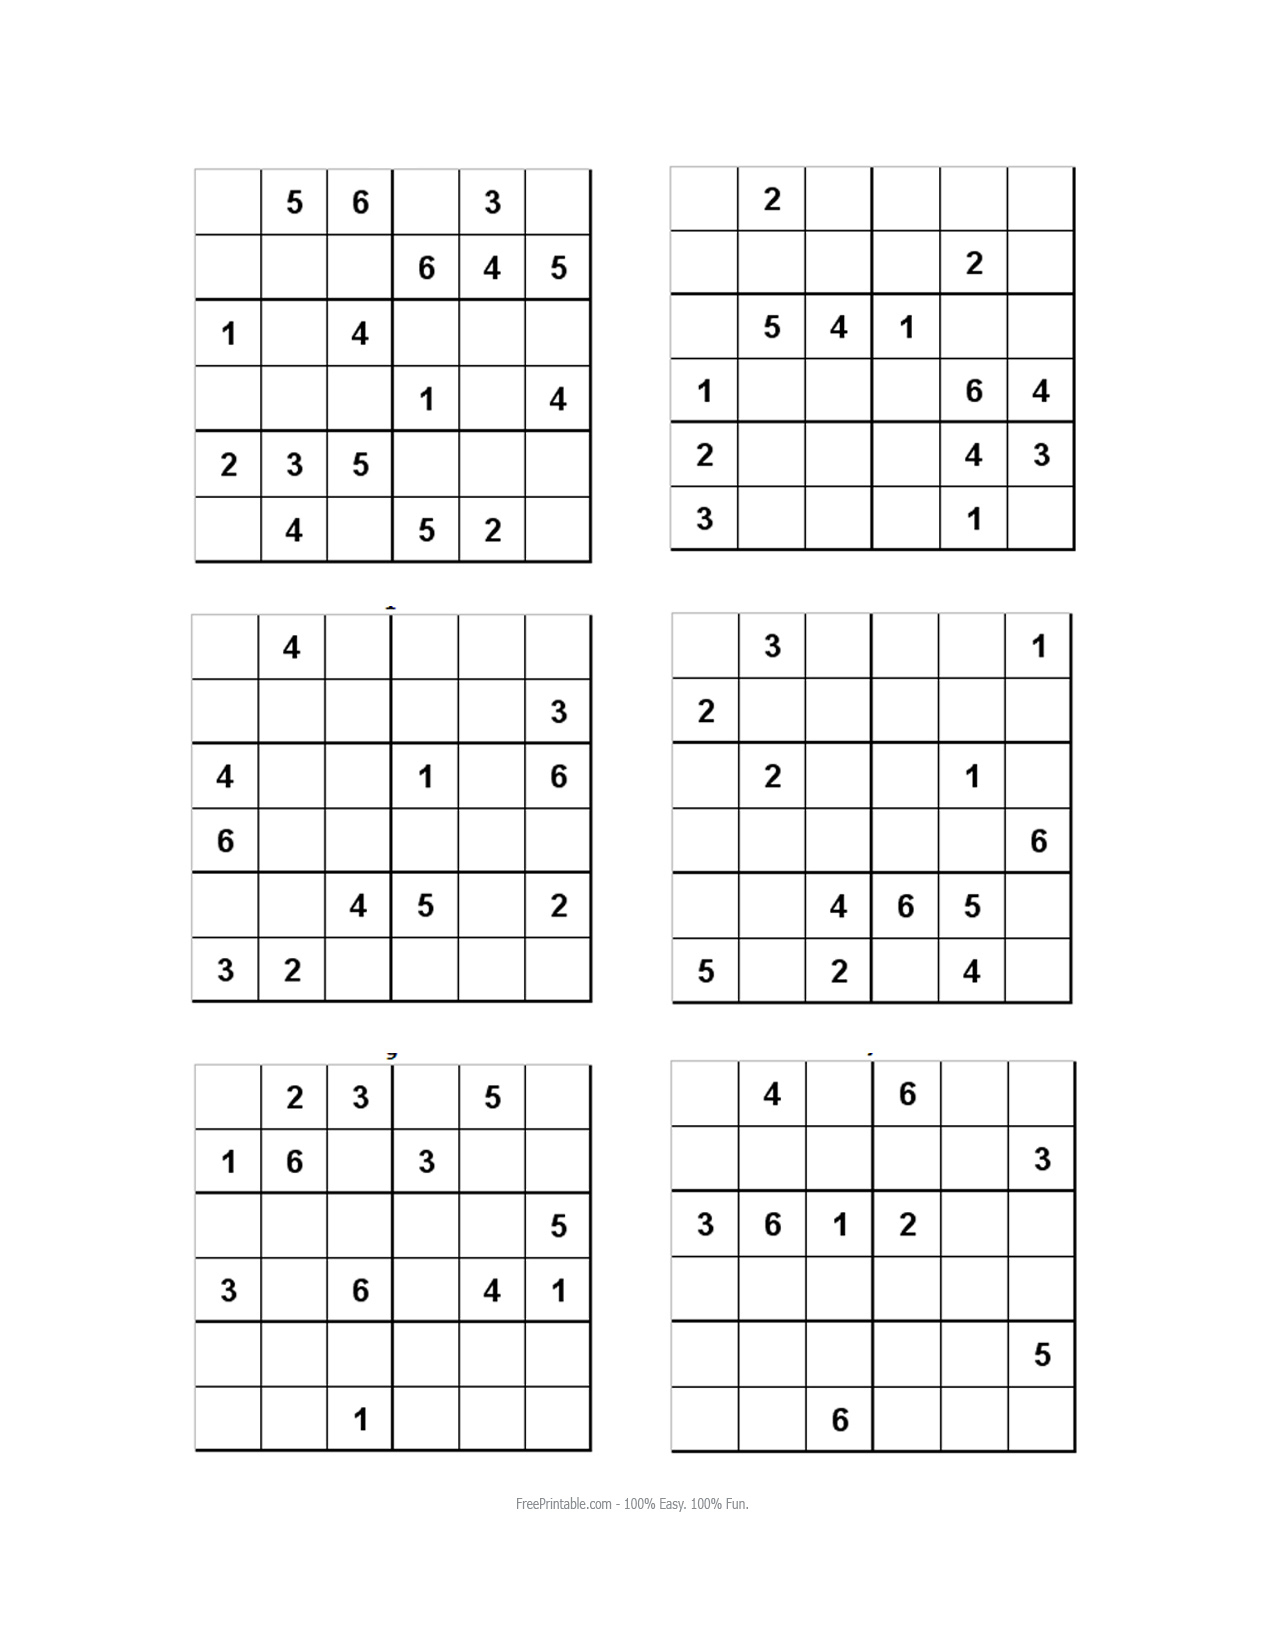 Worksheet Sudoku 6X6 | Printable Worksheets And Activities encequiconcerne Sudoku Gratuit Enfant